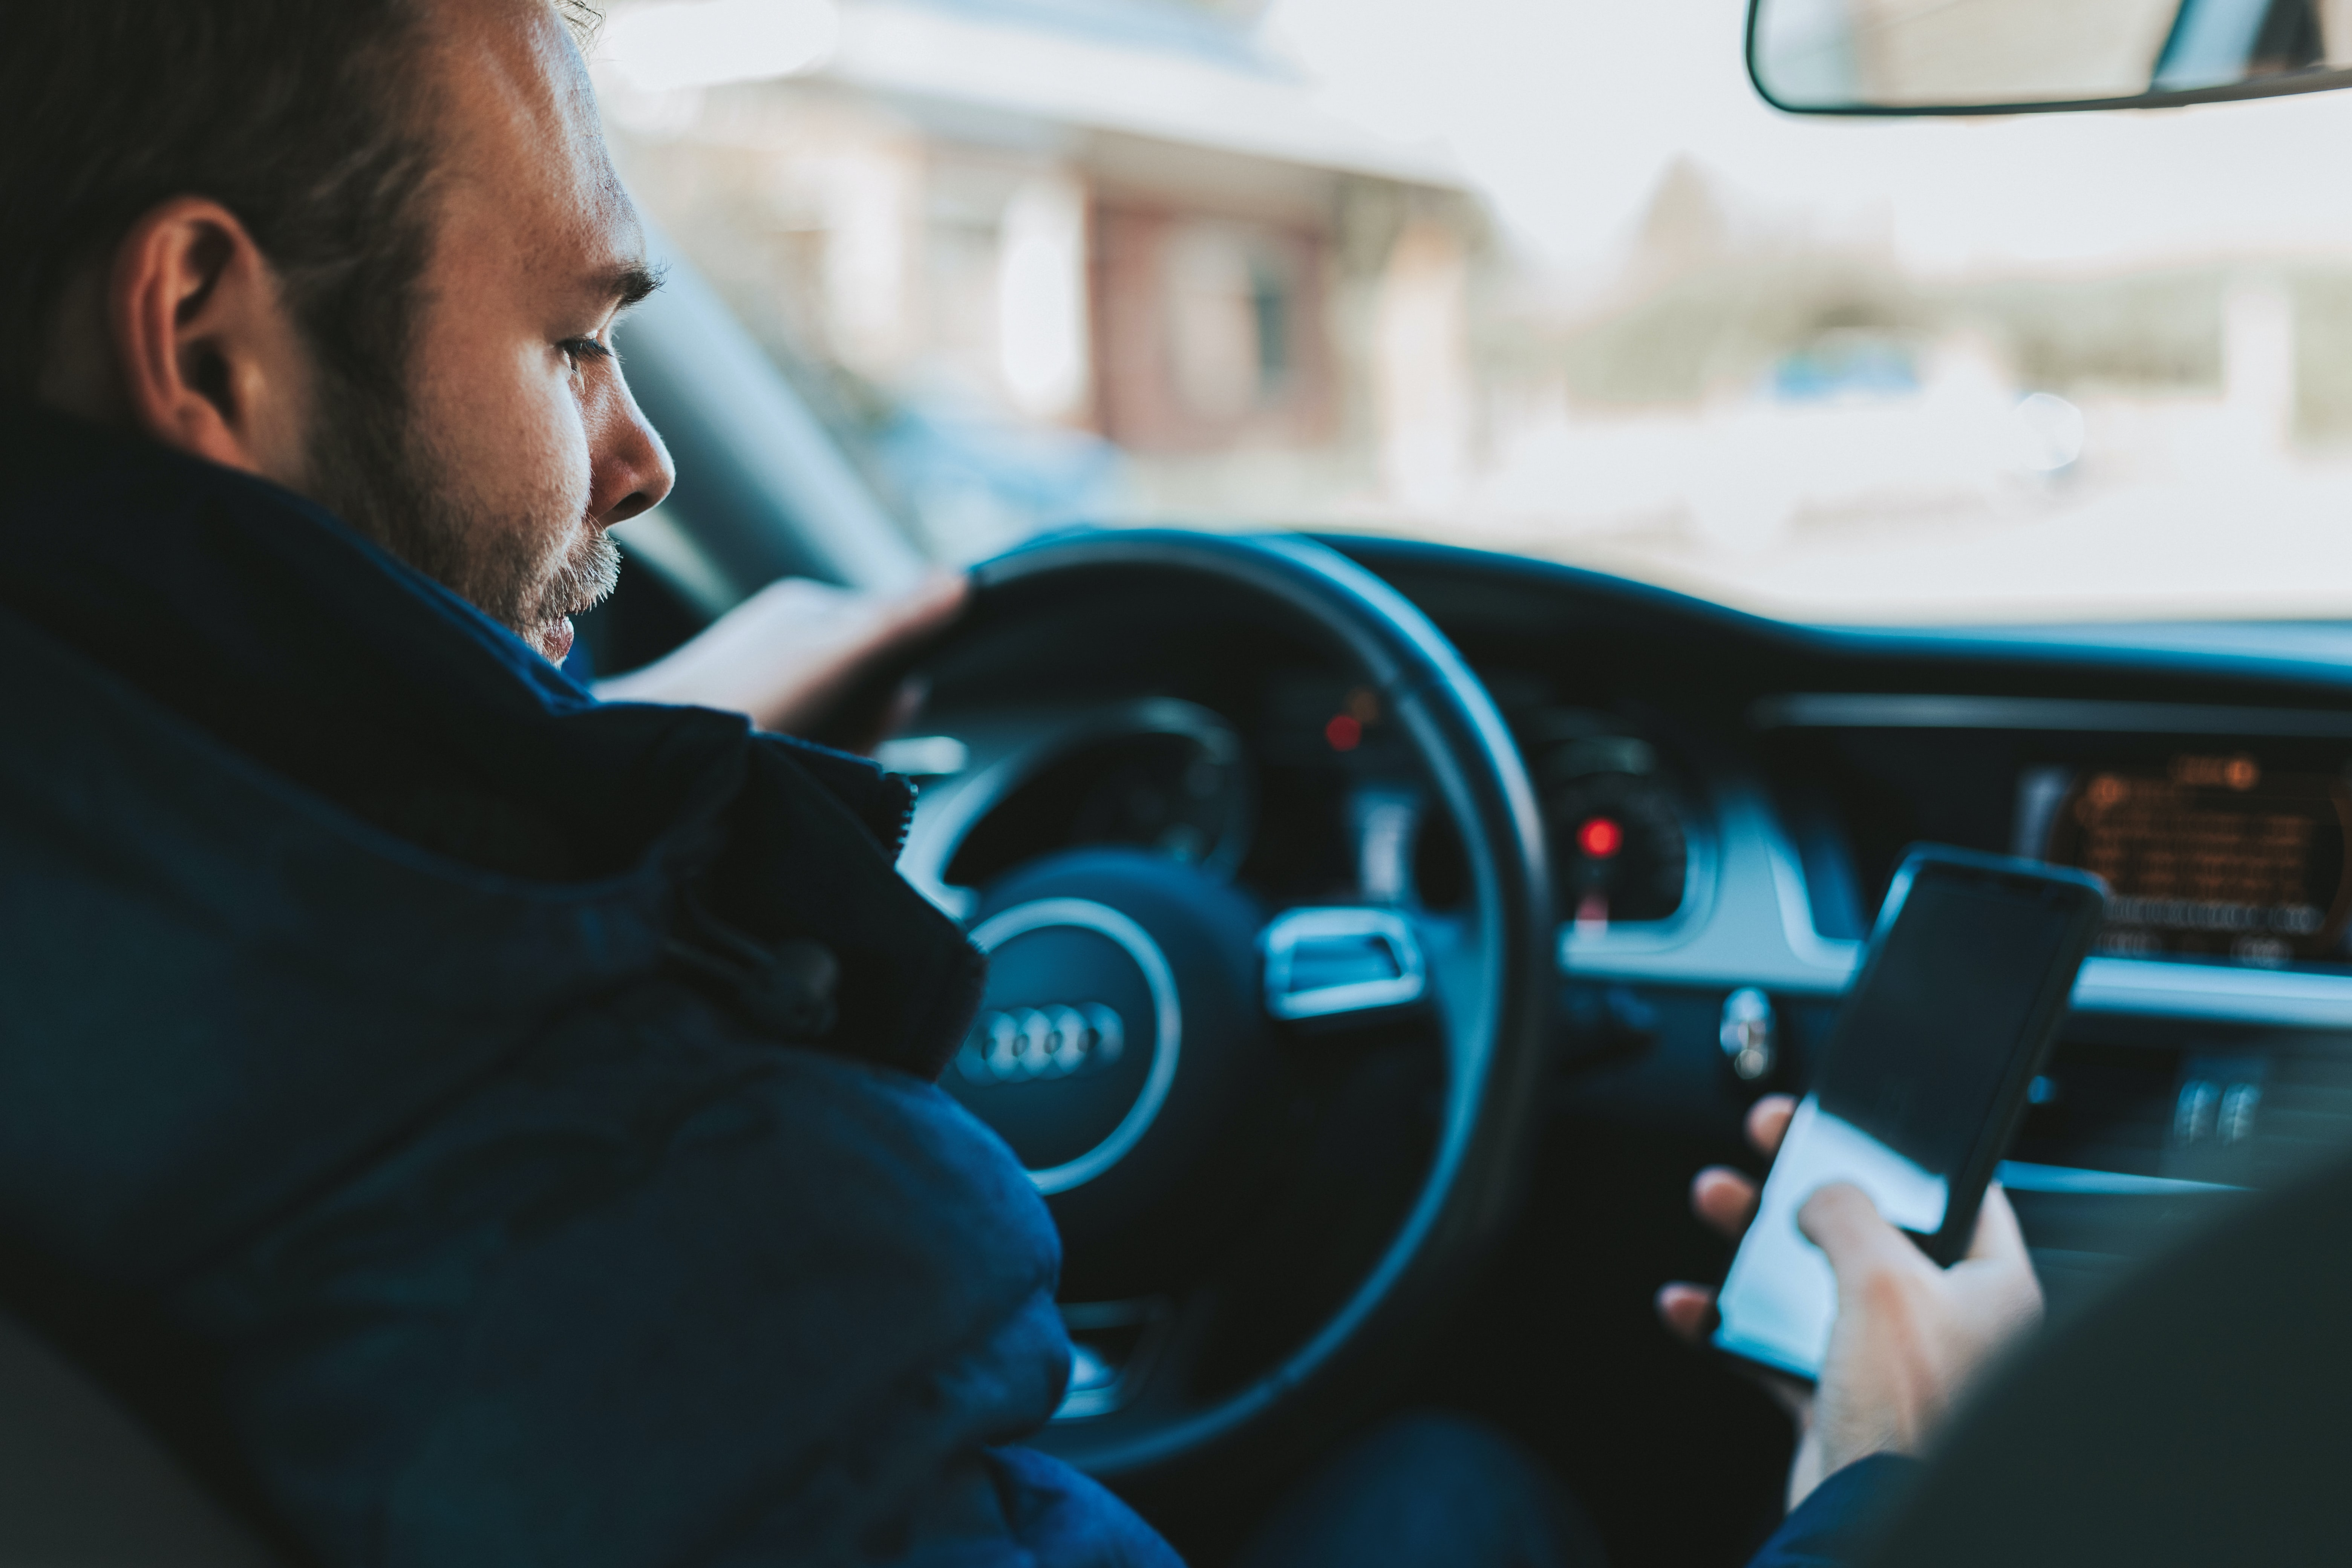 Driver distracted by phone